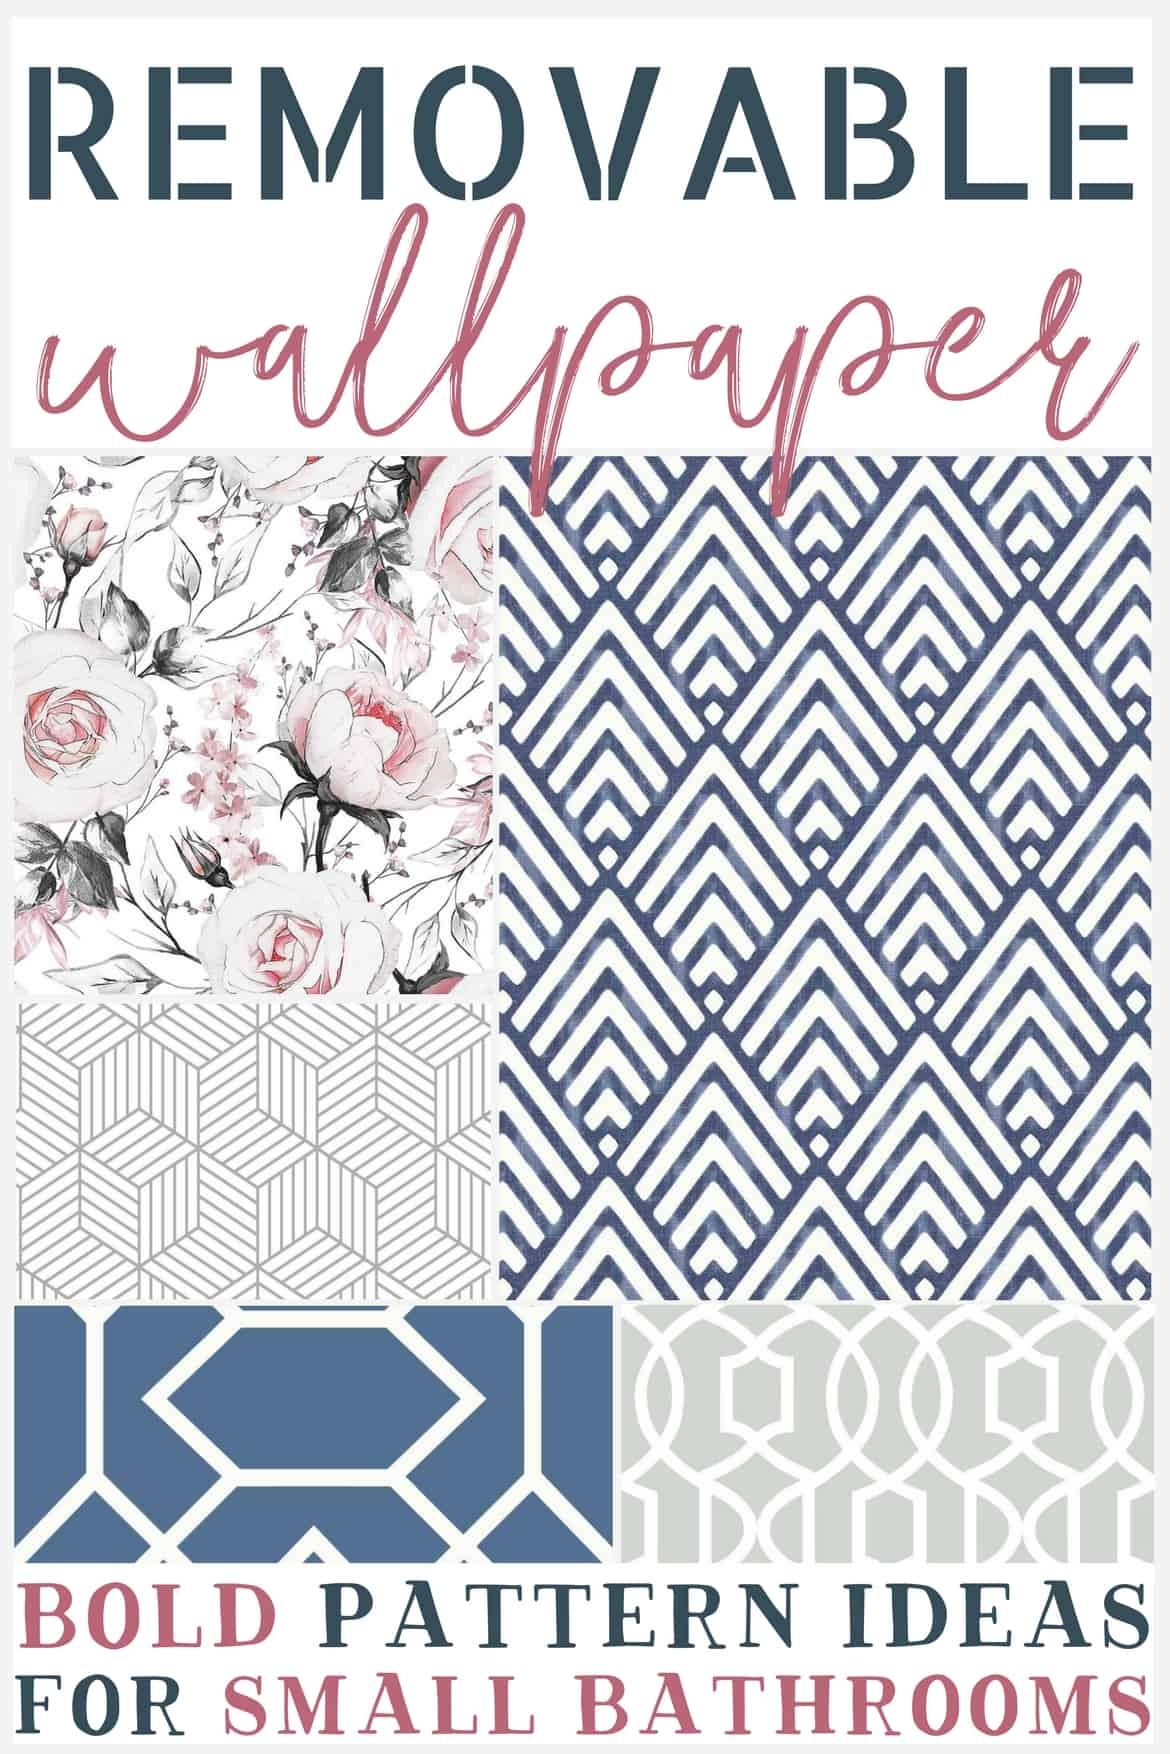 Bold Removable Wallpaper Patterns For Small Bathrooms The Weathered Fox